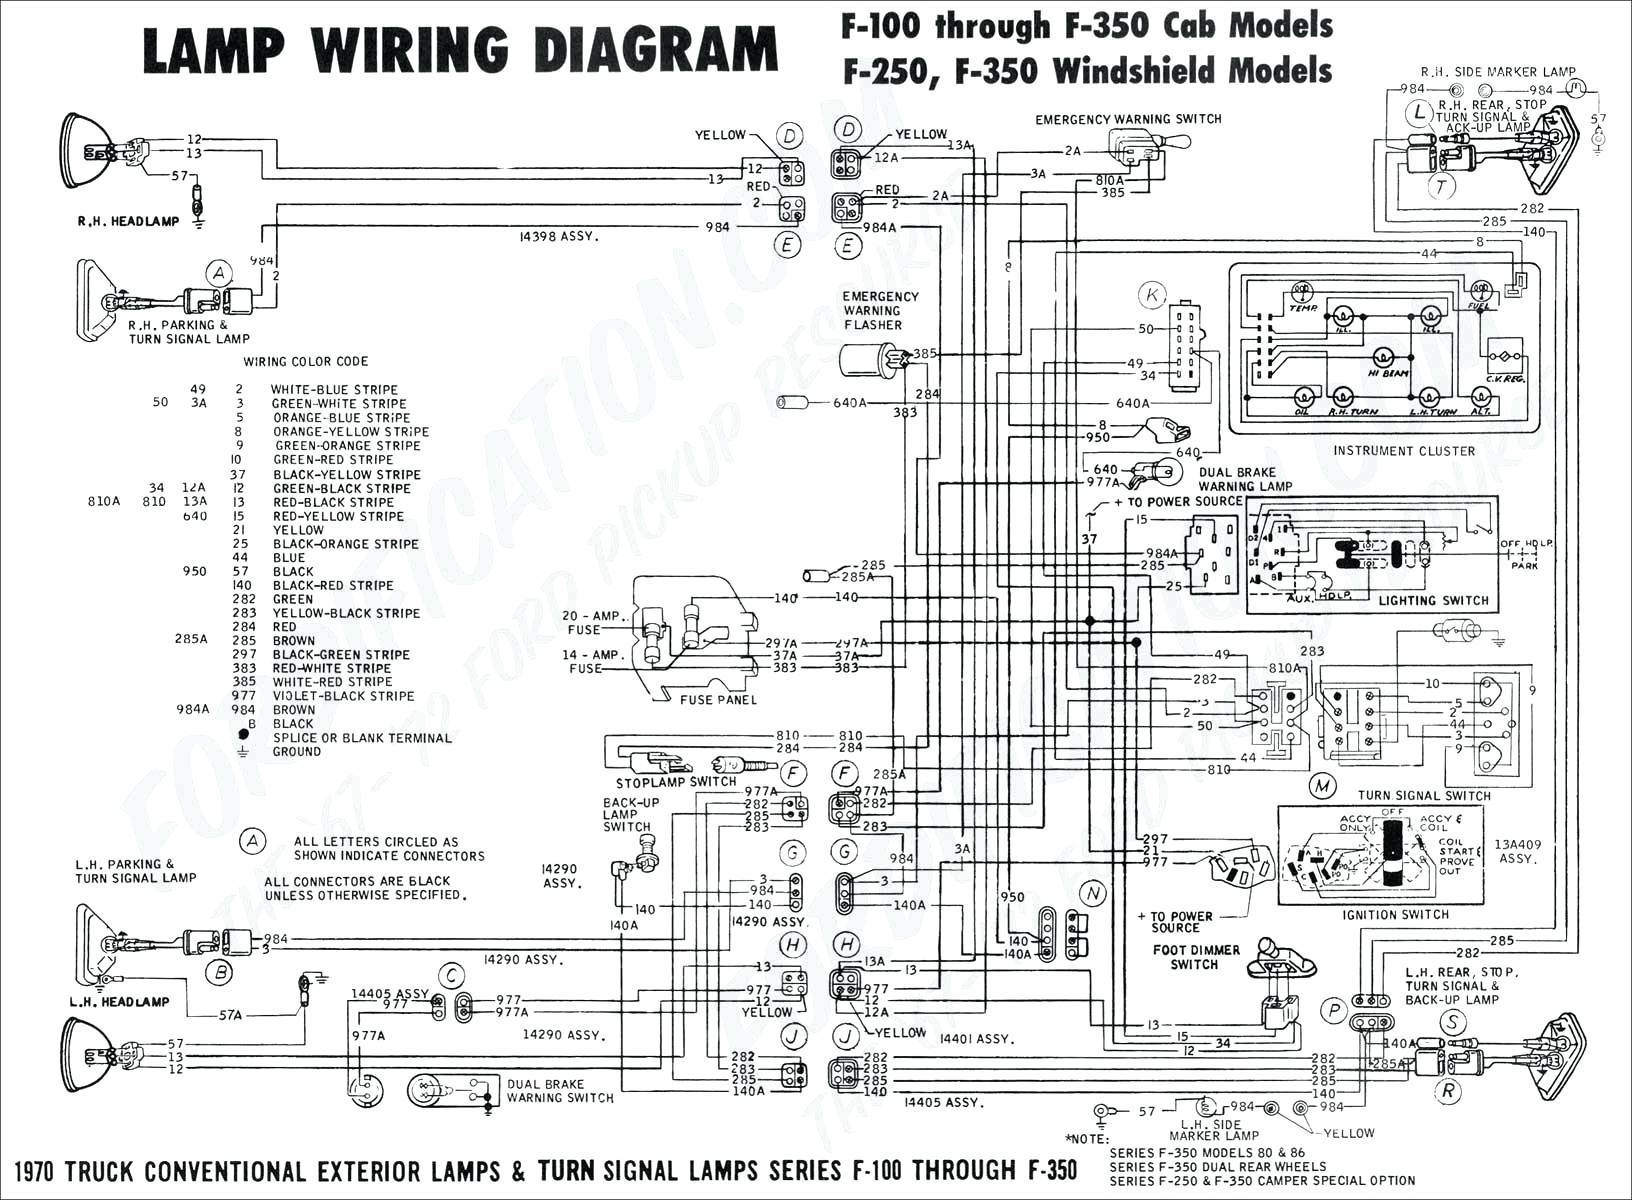 File Name Bas Tracker Wiring Diagram